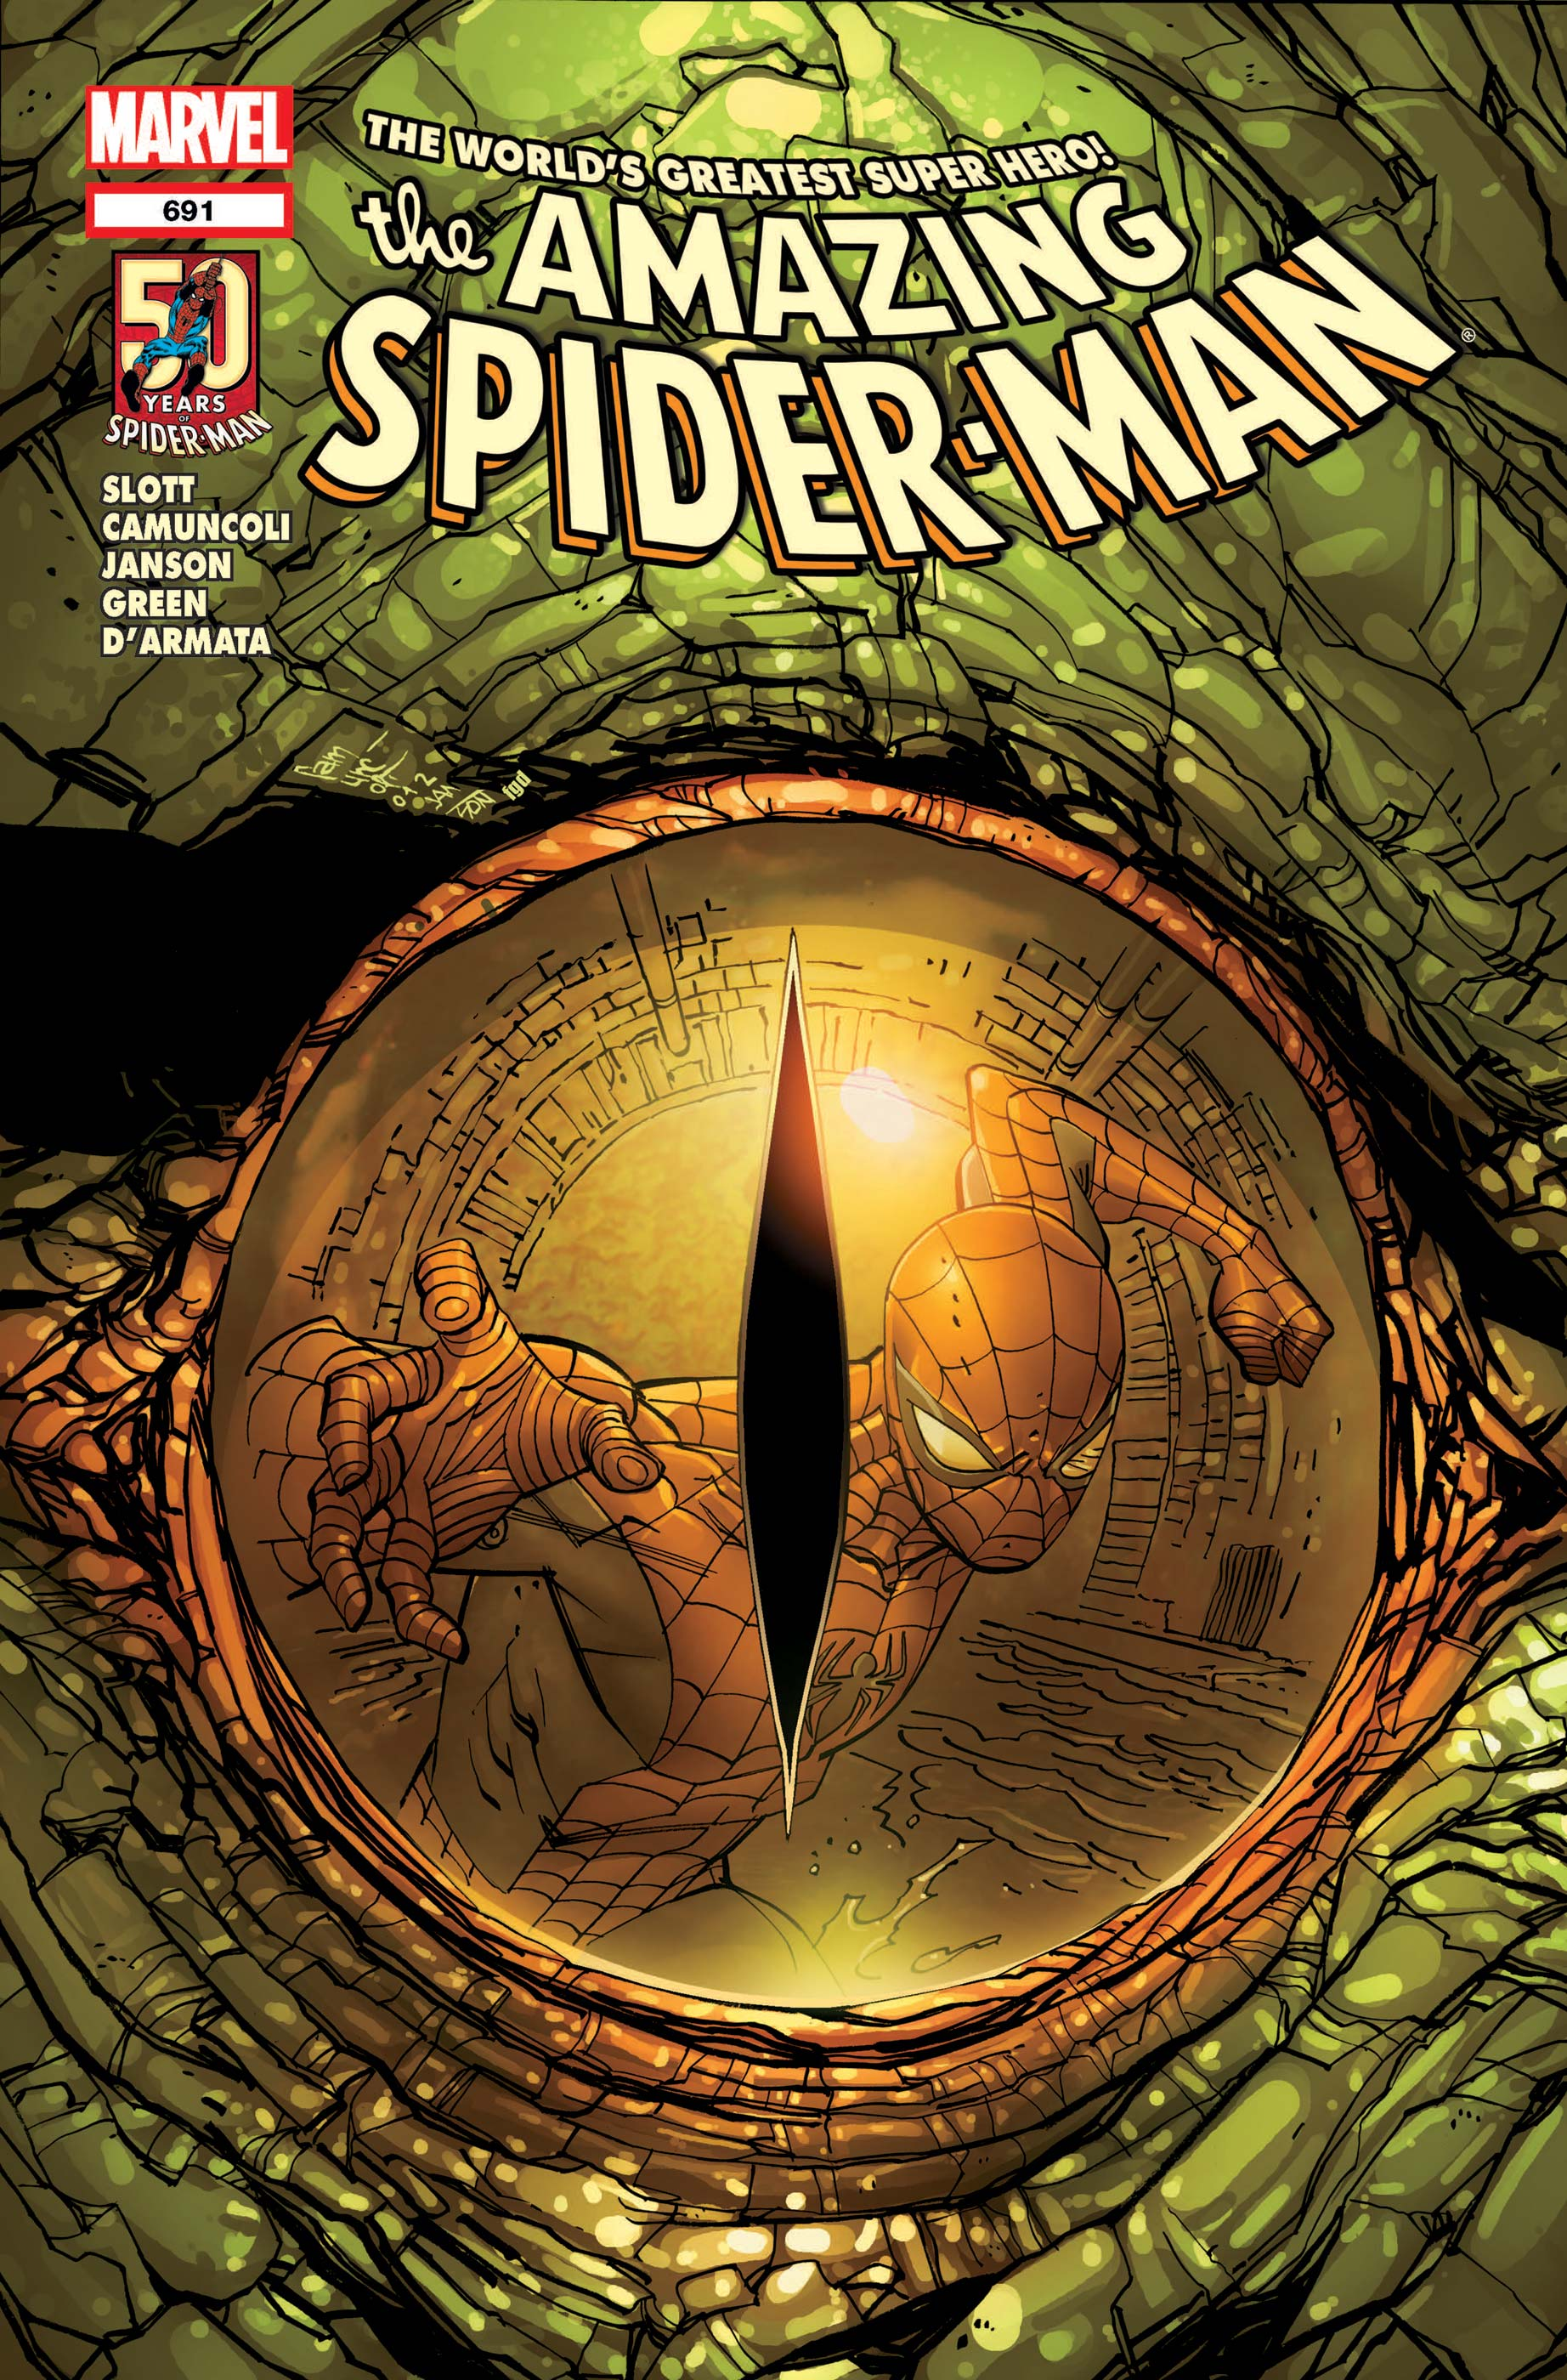 Amazing Spider-Man (1999) #691